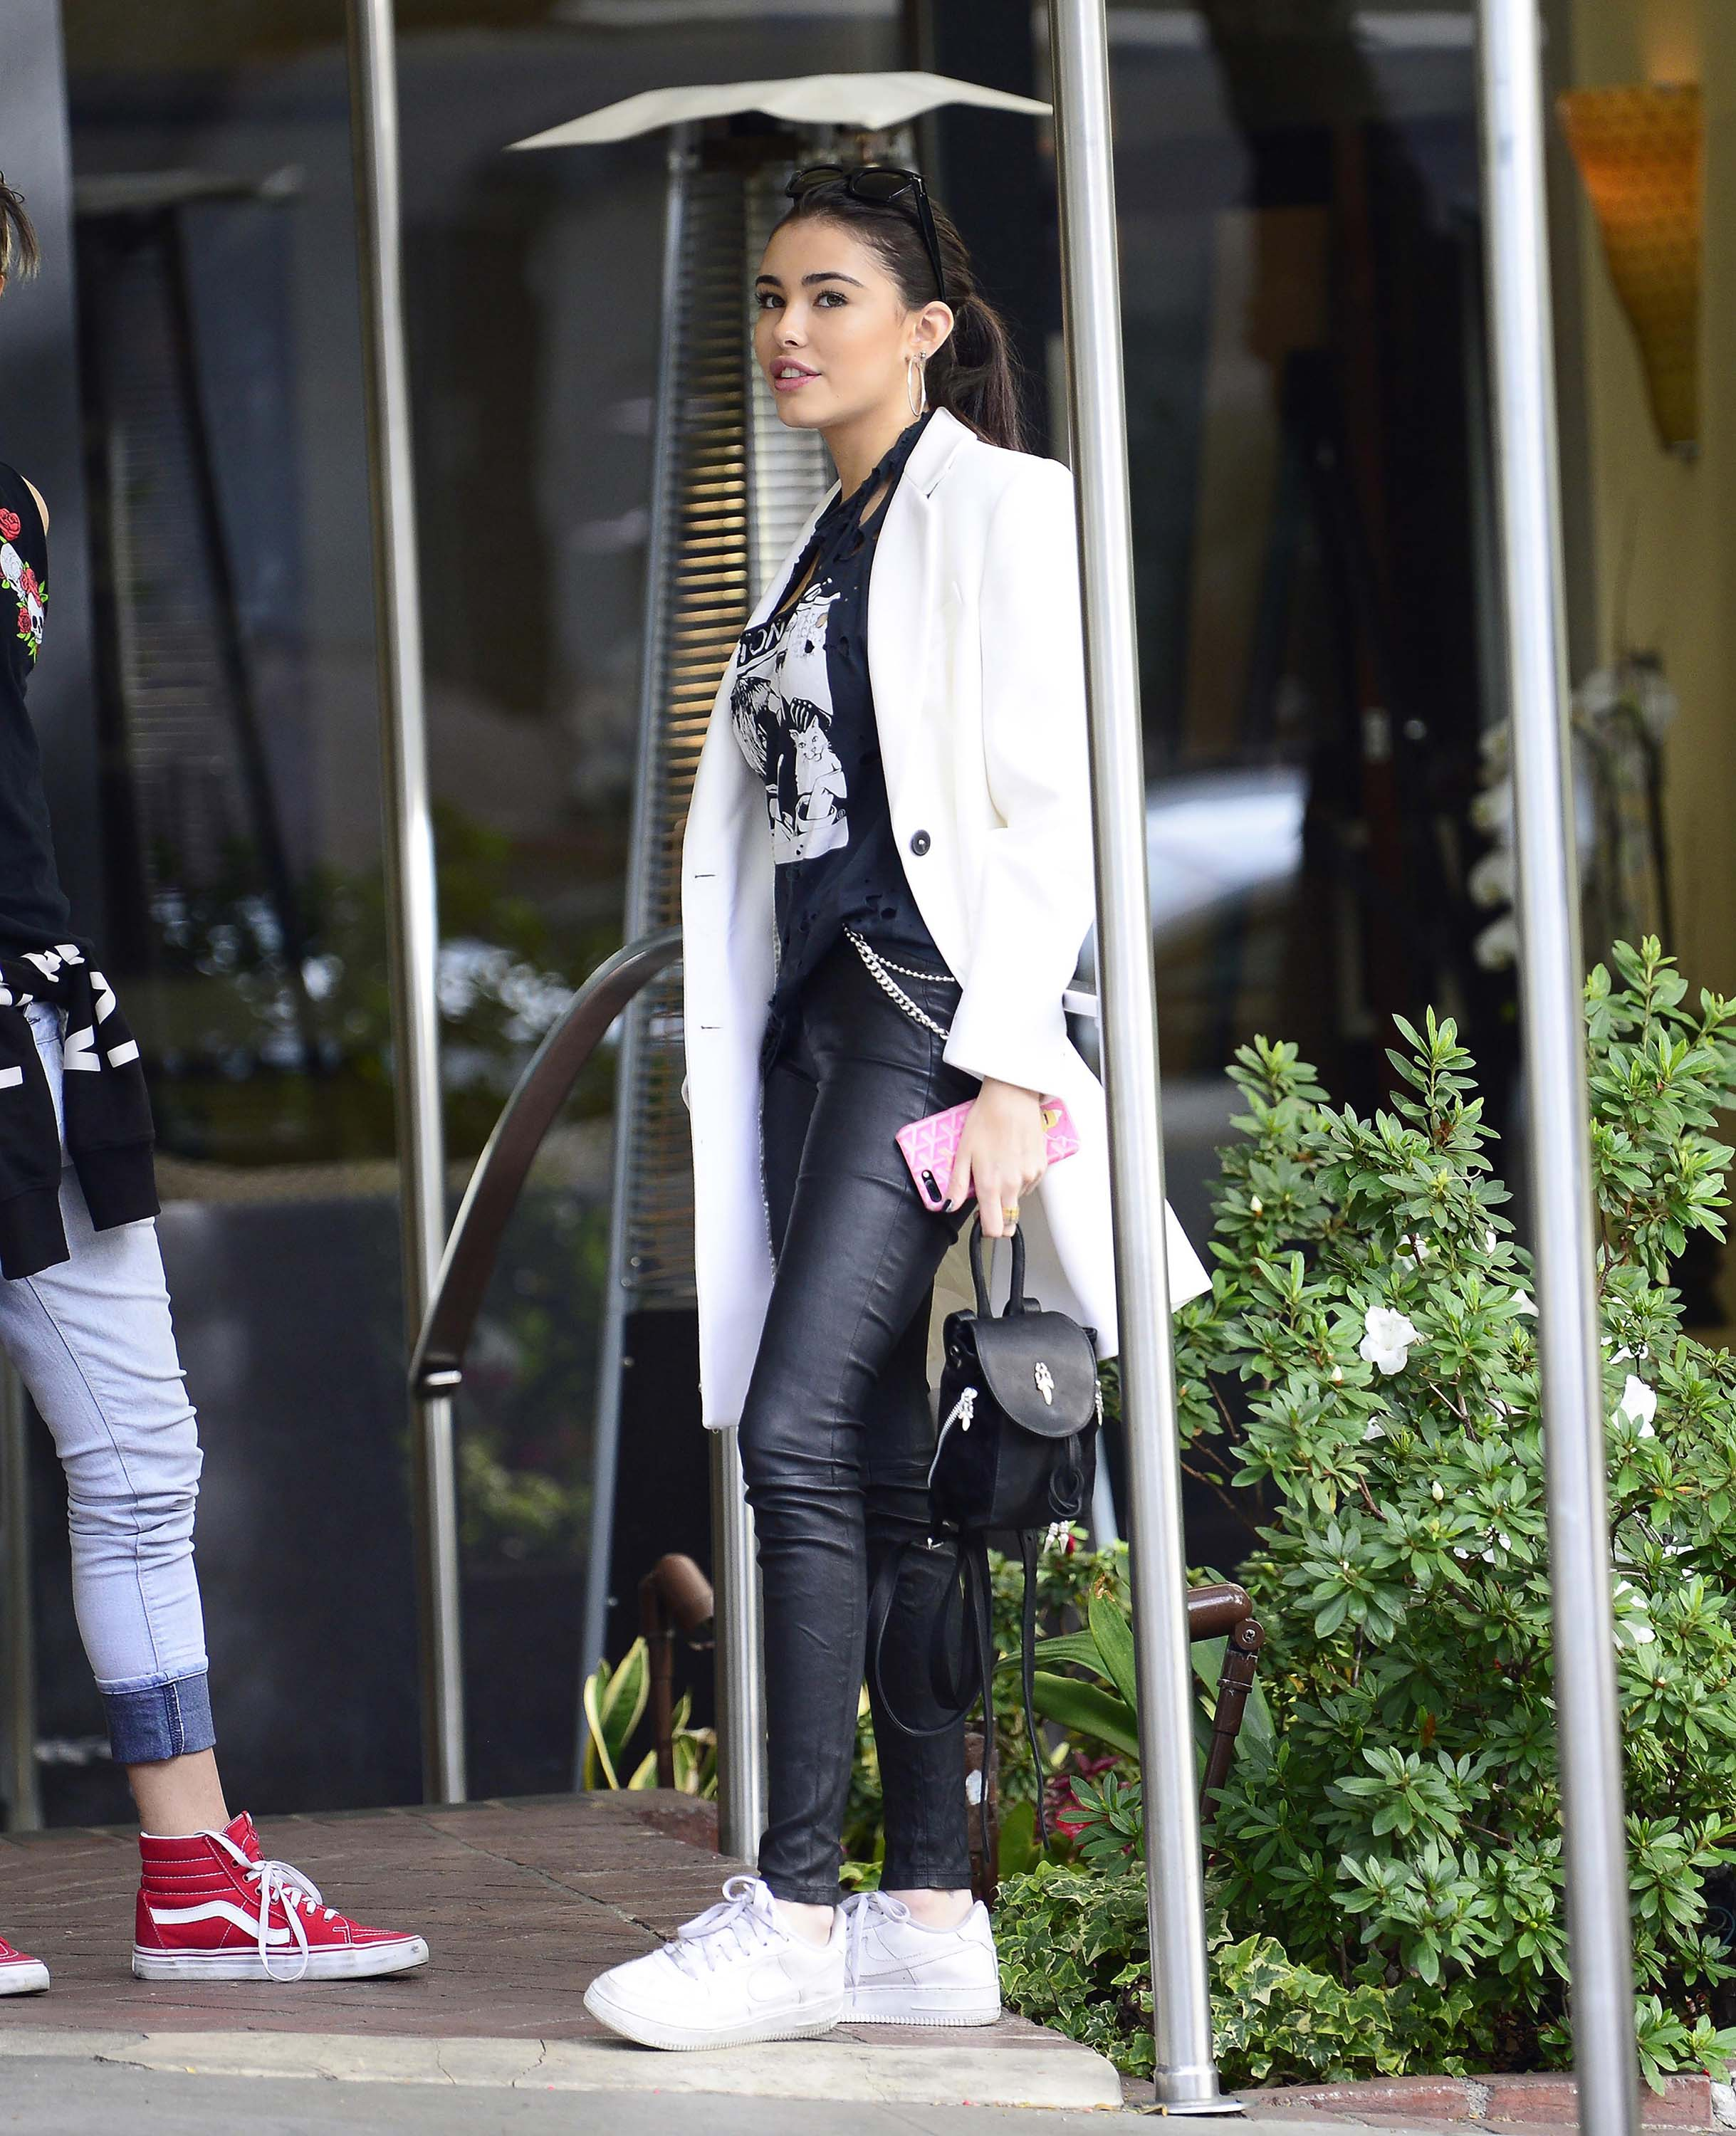 Madison Beer leaves the Sunset Marquis Hotel